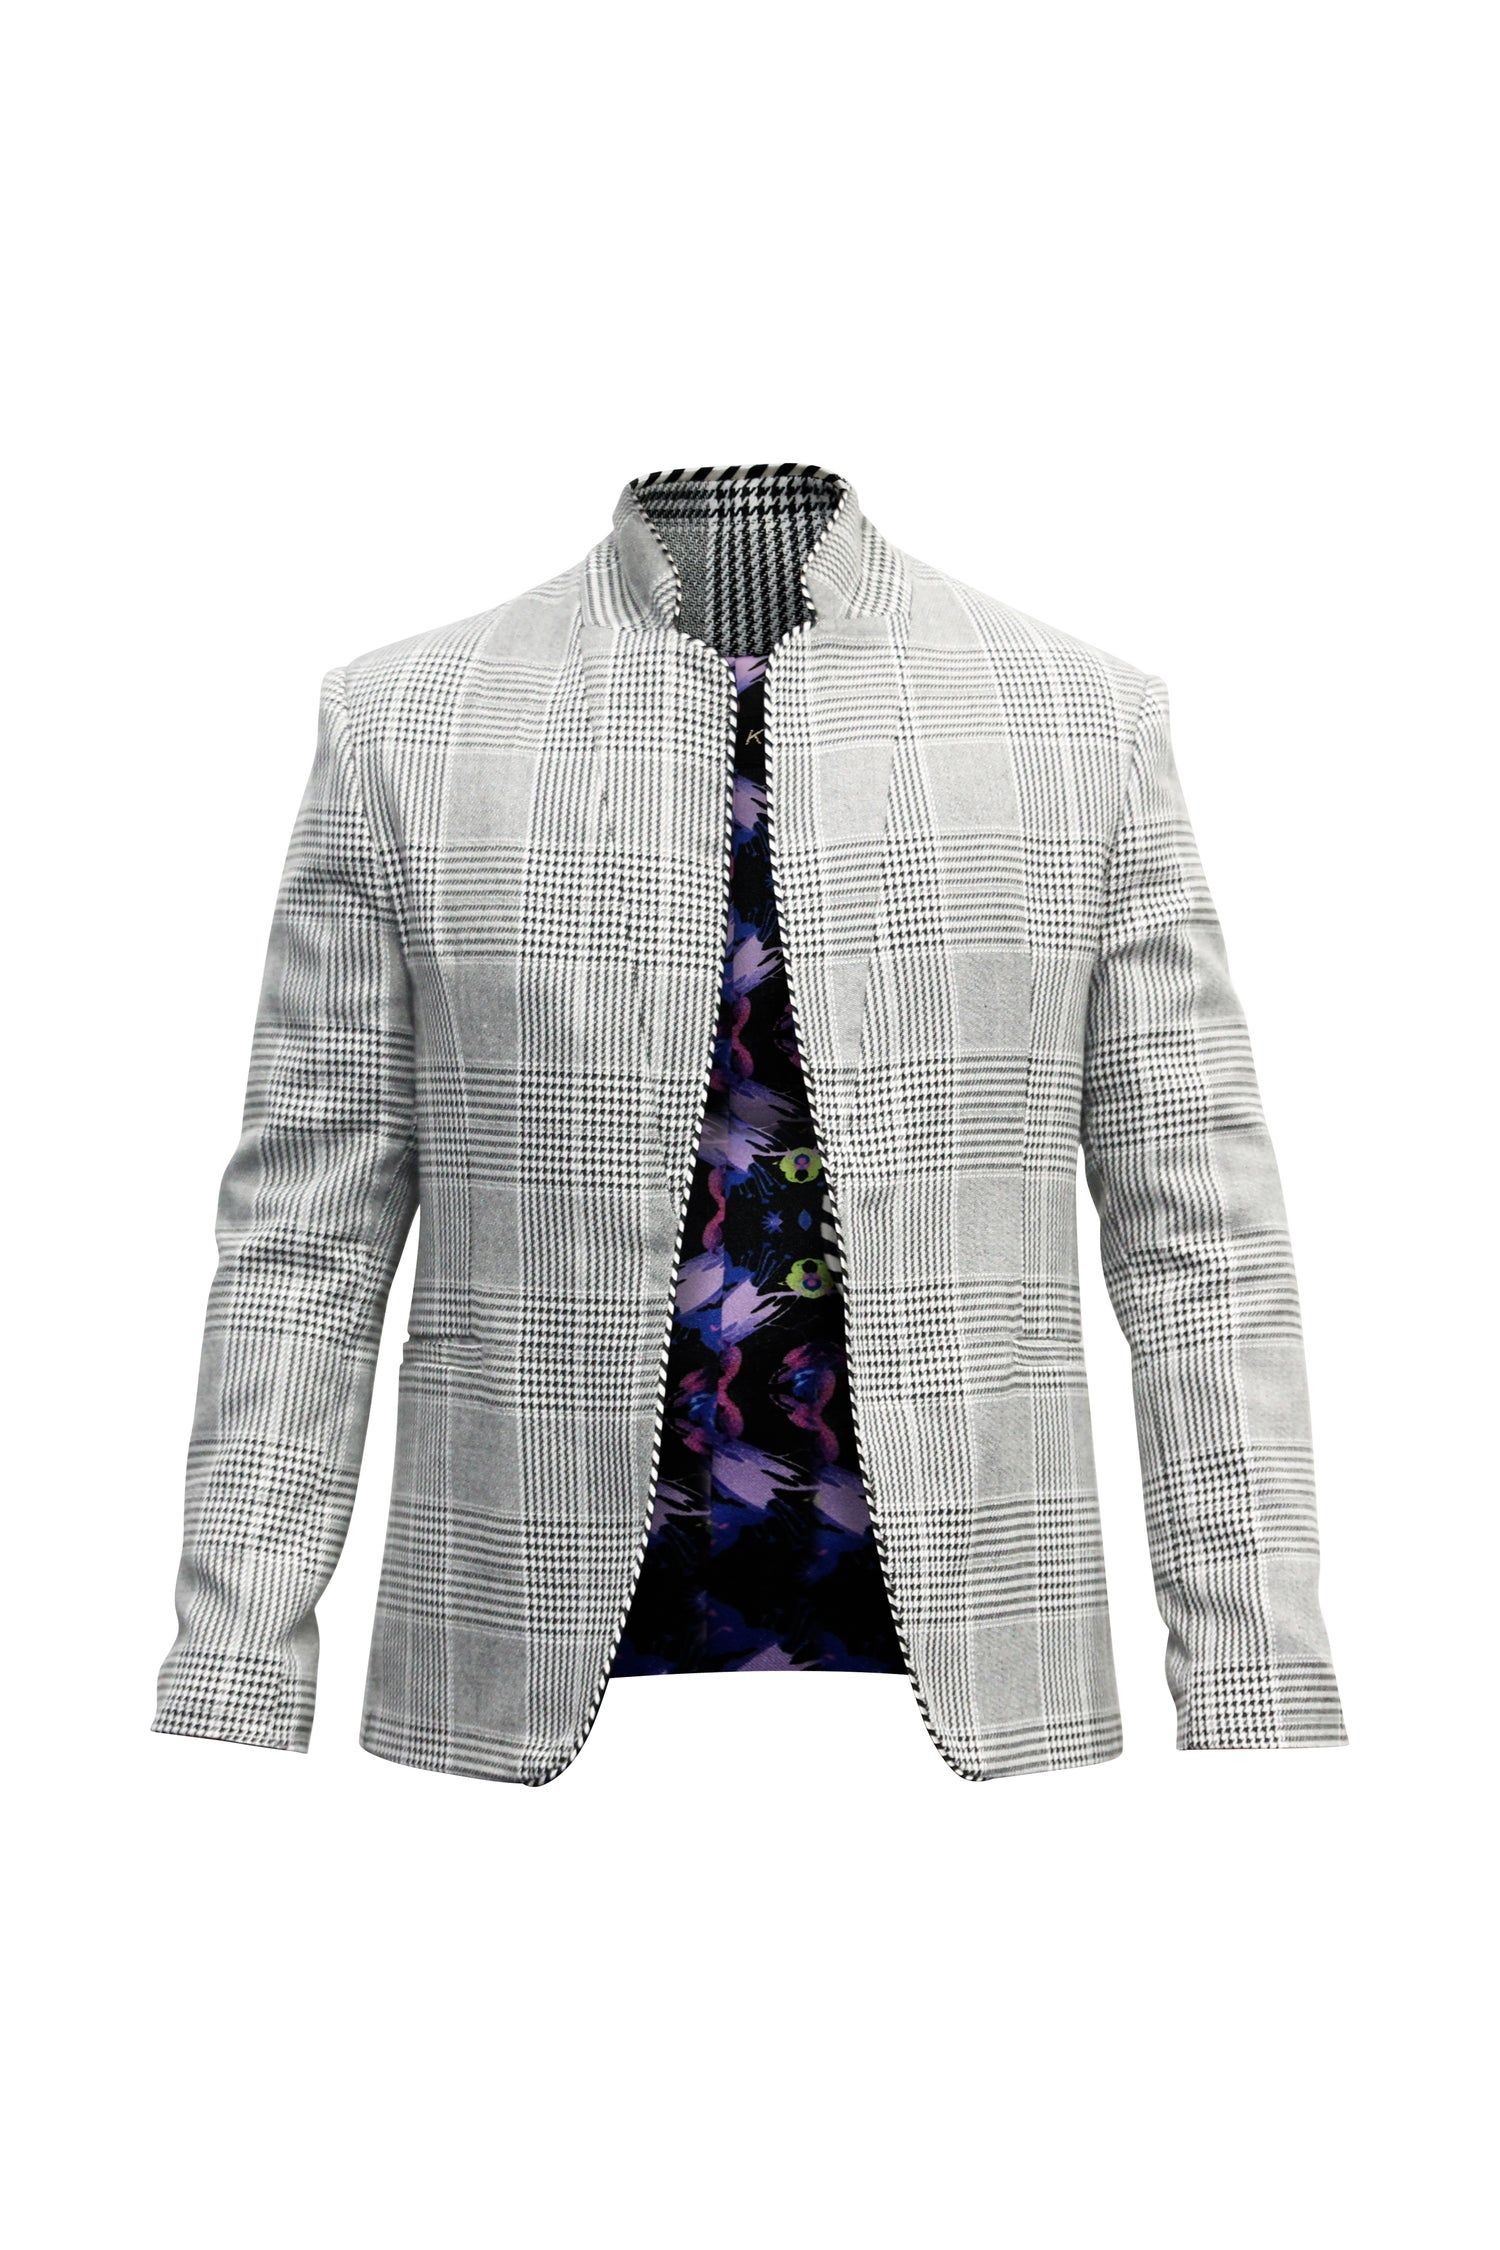 Image of Yarn Dye Plaid Blazer